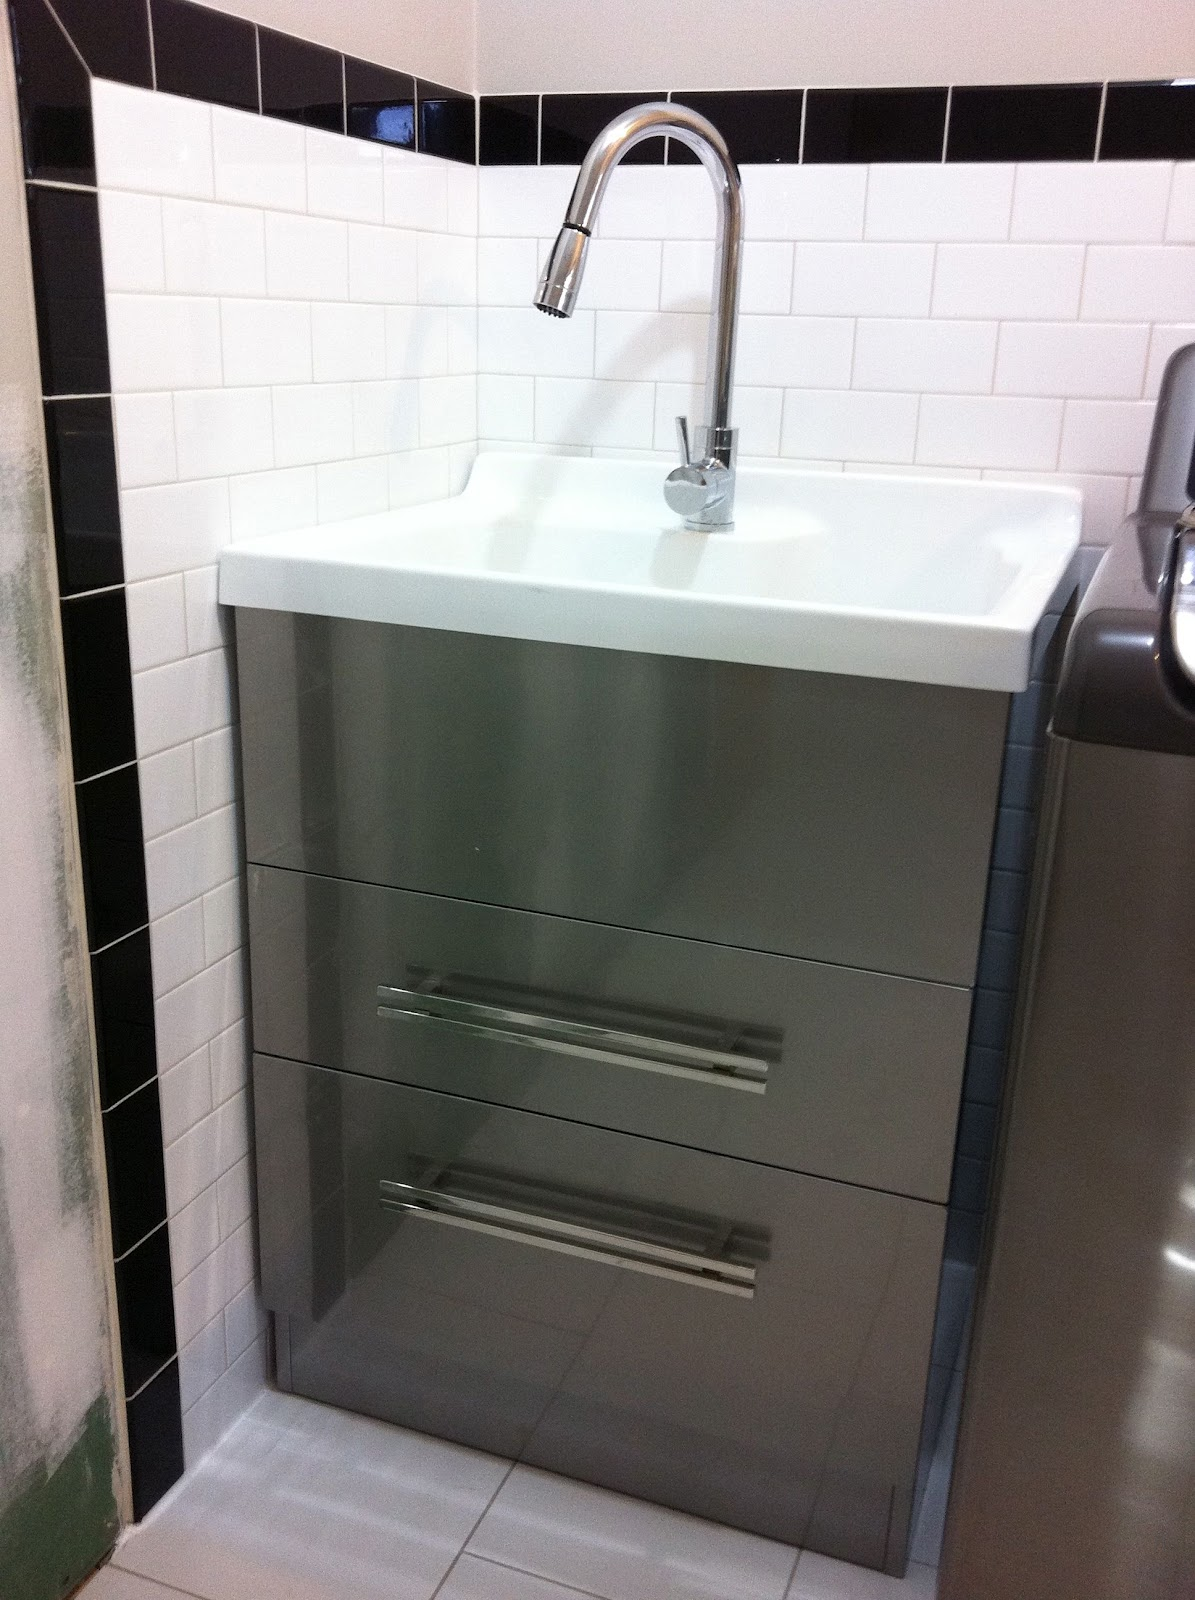 Costco Kitchen Sink Custom Designs Utility Bing Images